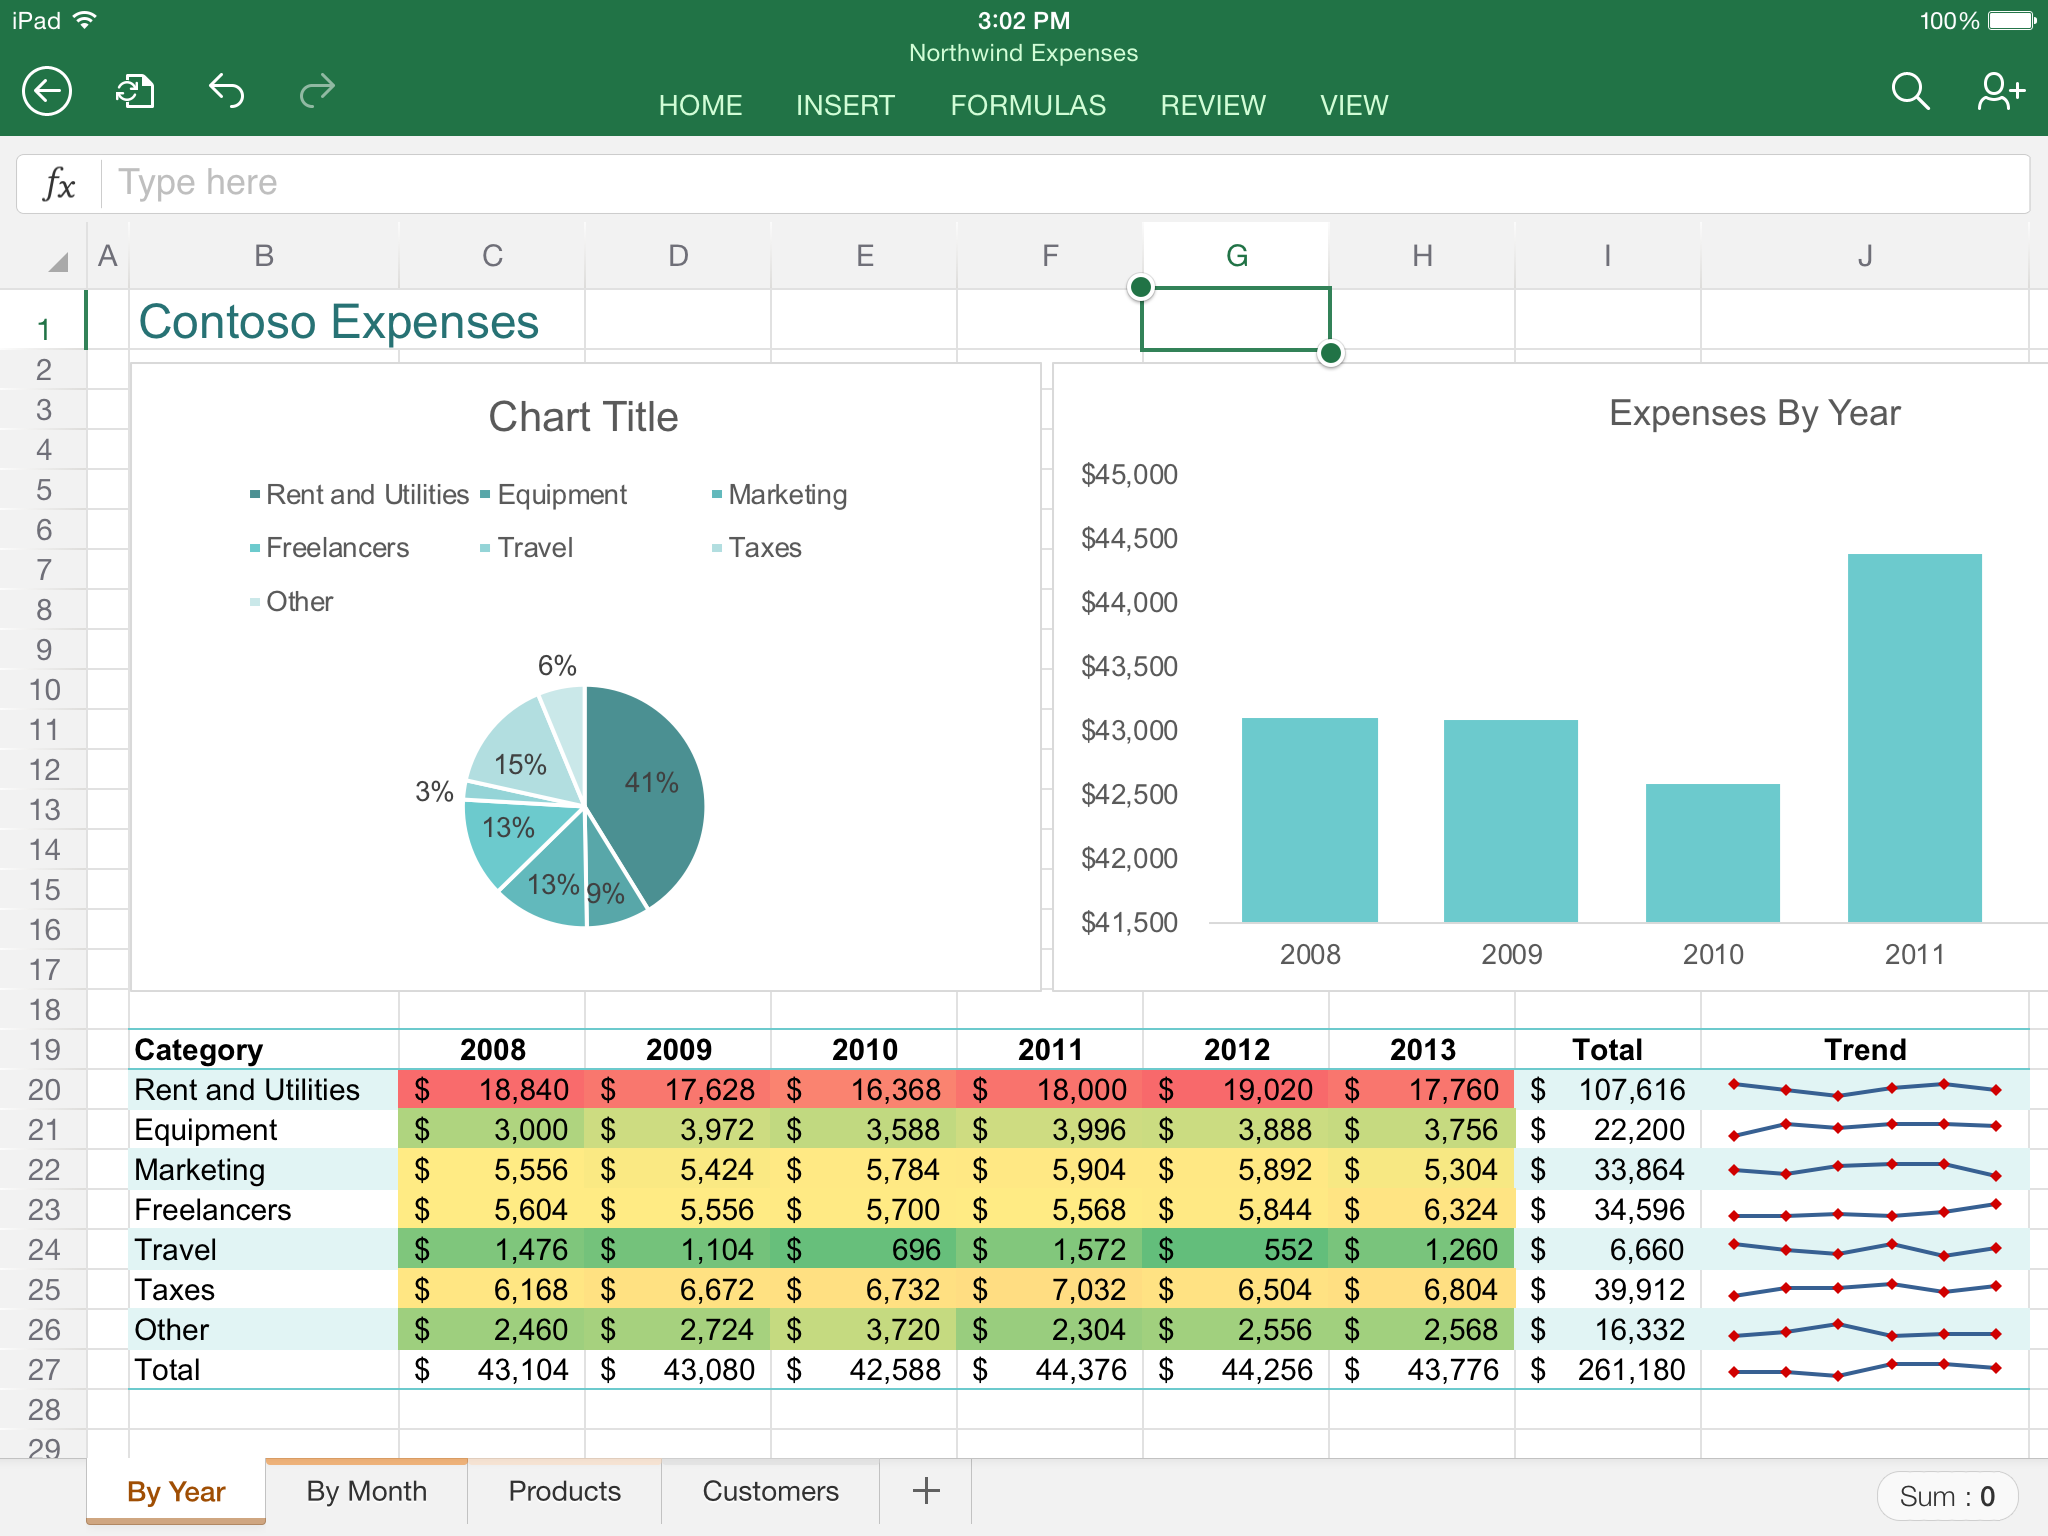 Ediblewildsus  Nice App Highlight Excel  Mobile Digital Now With Excellent Excel In Action With Astonishing Excel Combine Worksheets Also Correlation Formula Excel In Addition How To Add Data Analysis In Excel Mac And Excel Minimum If As Well As How Do I Create A Chart In Excel Additionally Normalize Data In Excel From Youstonybrookedu With Ediblewildsus  Excellent App Highlight Excel  Mobile Digital Now With Astonishing Excel In Action And Nice Excel Combine Worksheets Also Correlation Formula Excel In Addition How To Add Data Analysis In Excel Mac From Youstonybrookedu